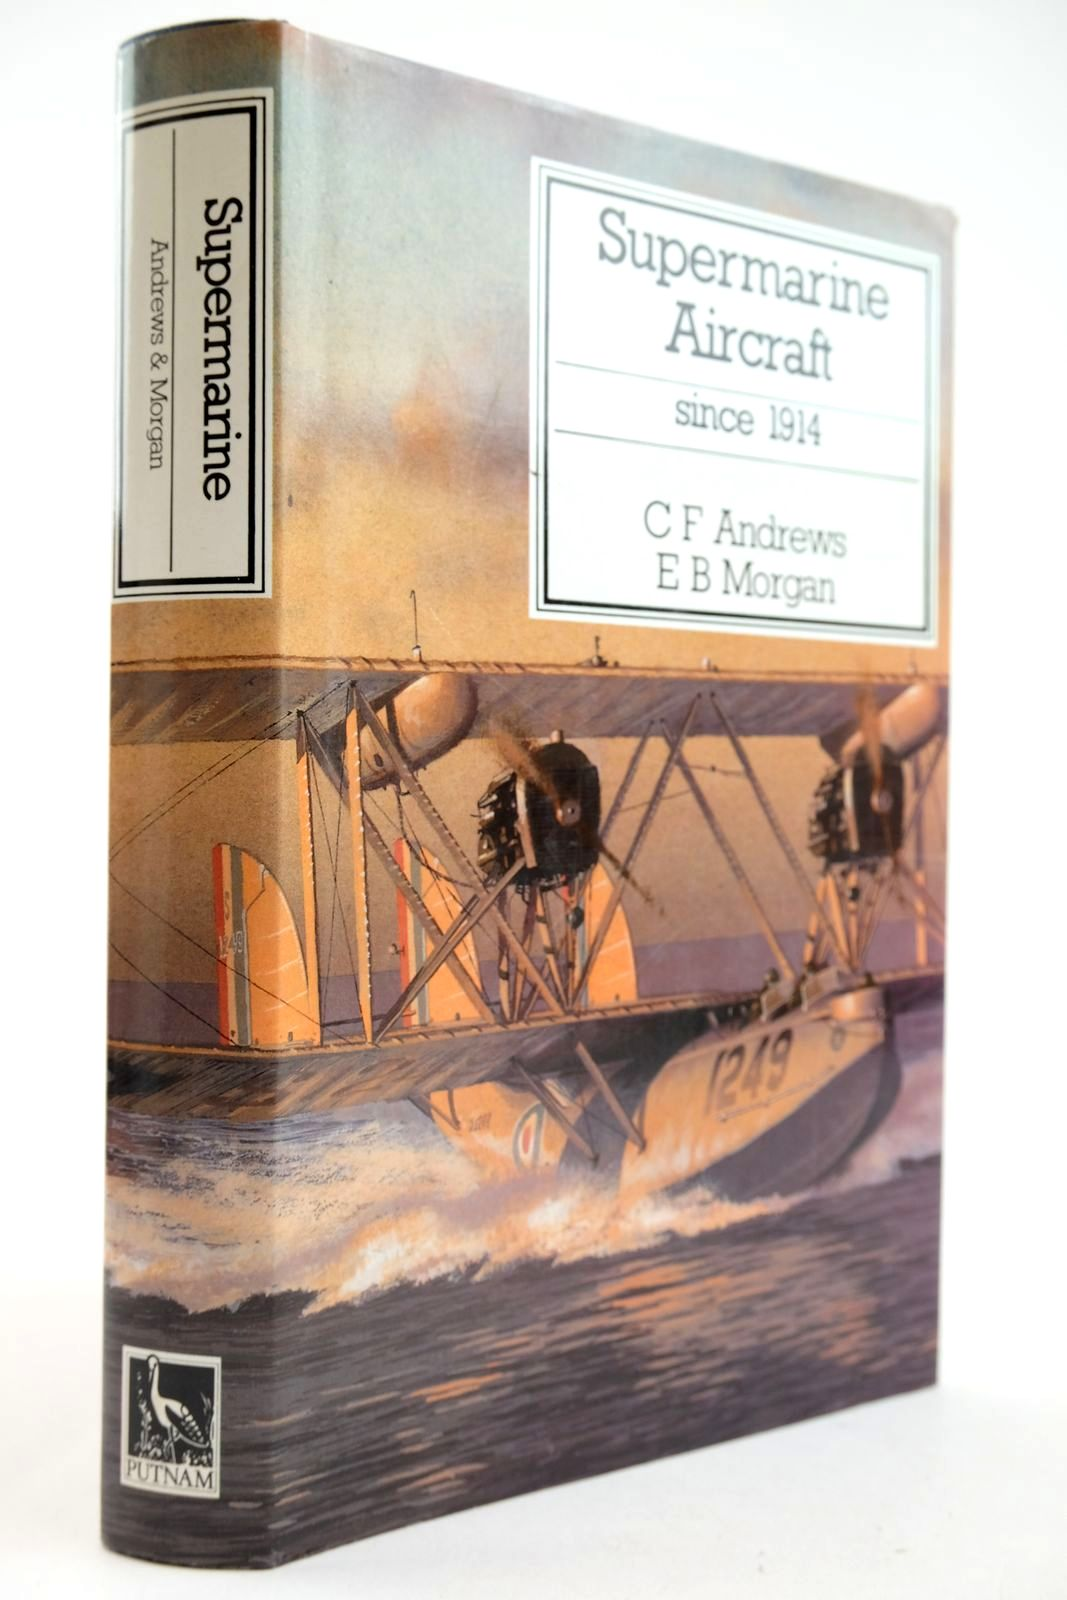 Photo of SUPERMARINE AIRCRAFT SINCE 1914 written by Andrews, C.F. Morgan, E.B. published by Putnam (STOCK CODE: 2132894)  for sale by Stella & Rose's Books